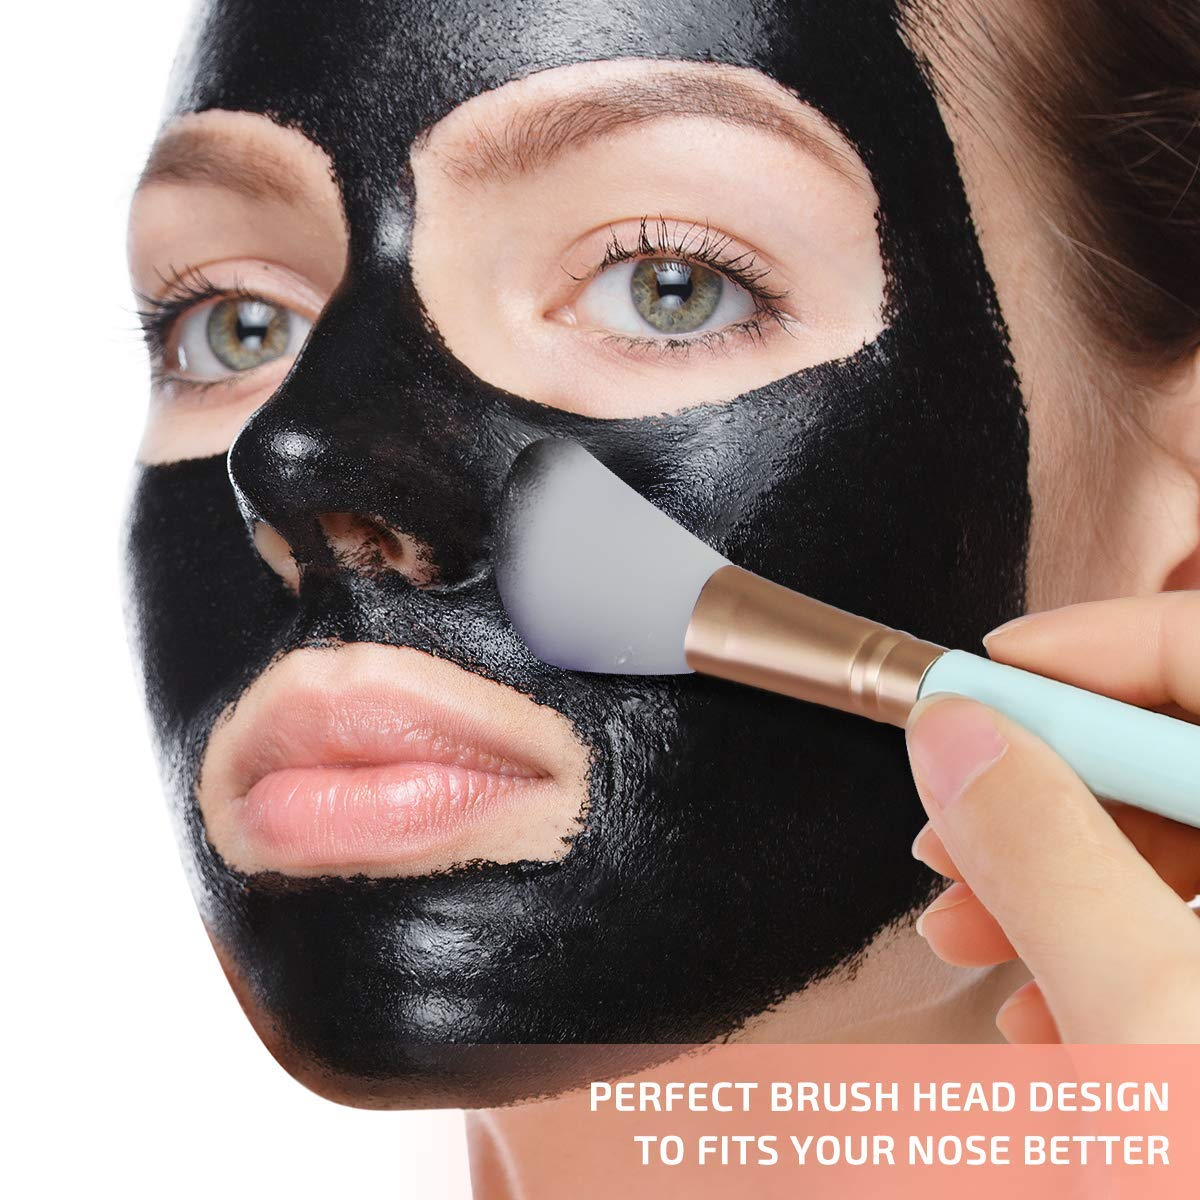 Silicone Face Mask Brush[Newest 2019], 4PCS Mask Beauty Tool Flexible Silicone Facial Mud Mask Brush